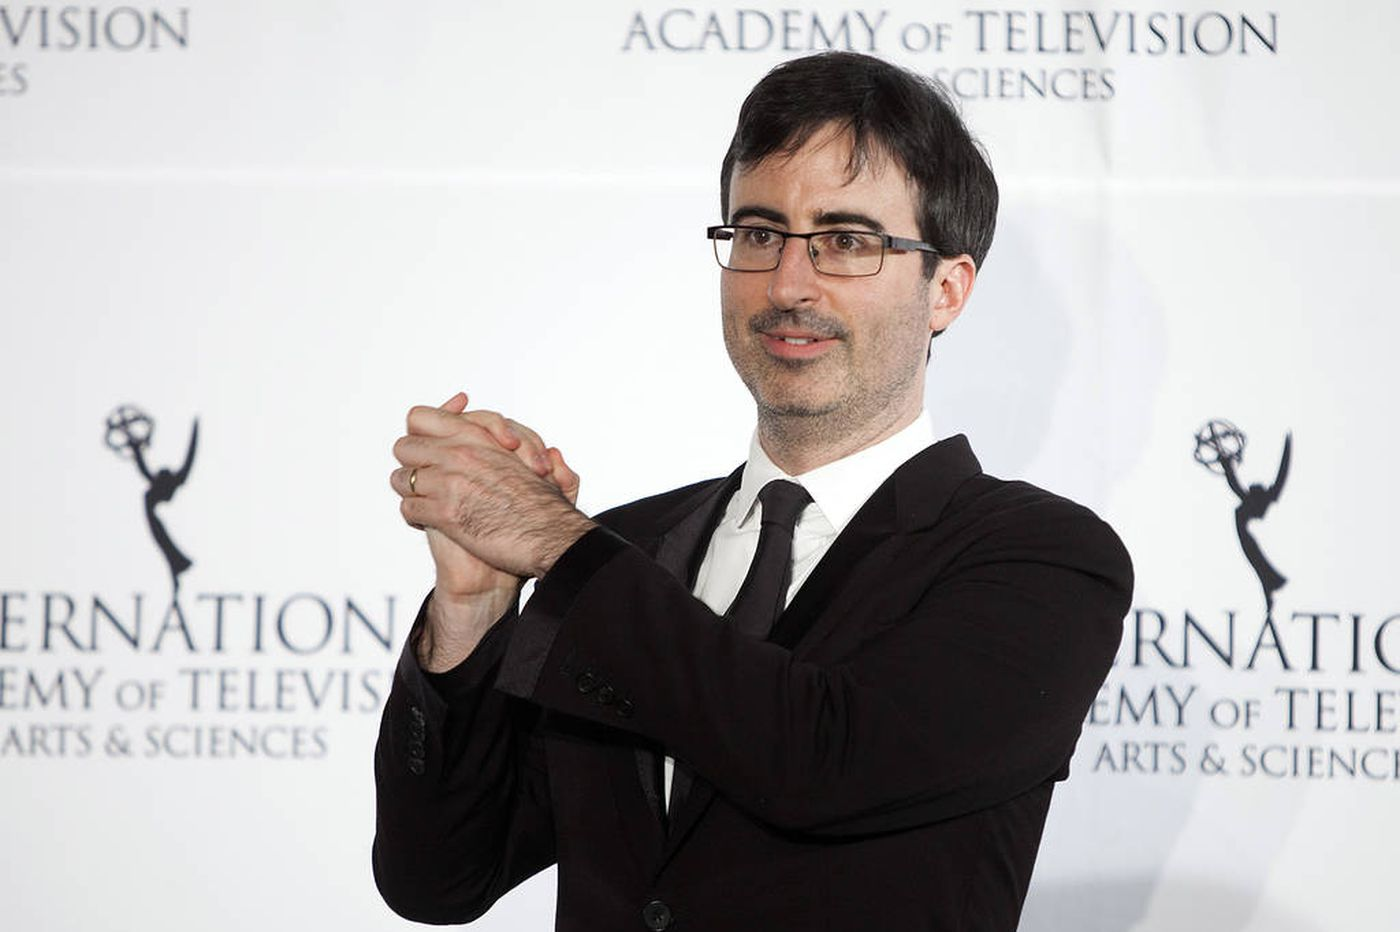 John Oliver, biting off a weekly chew